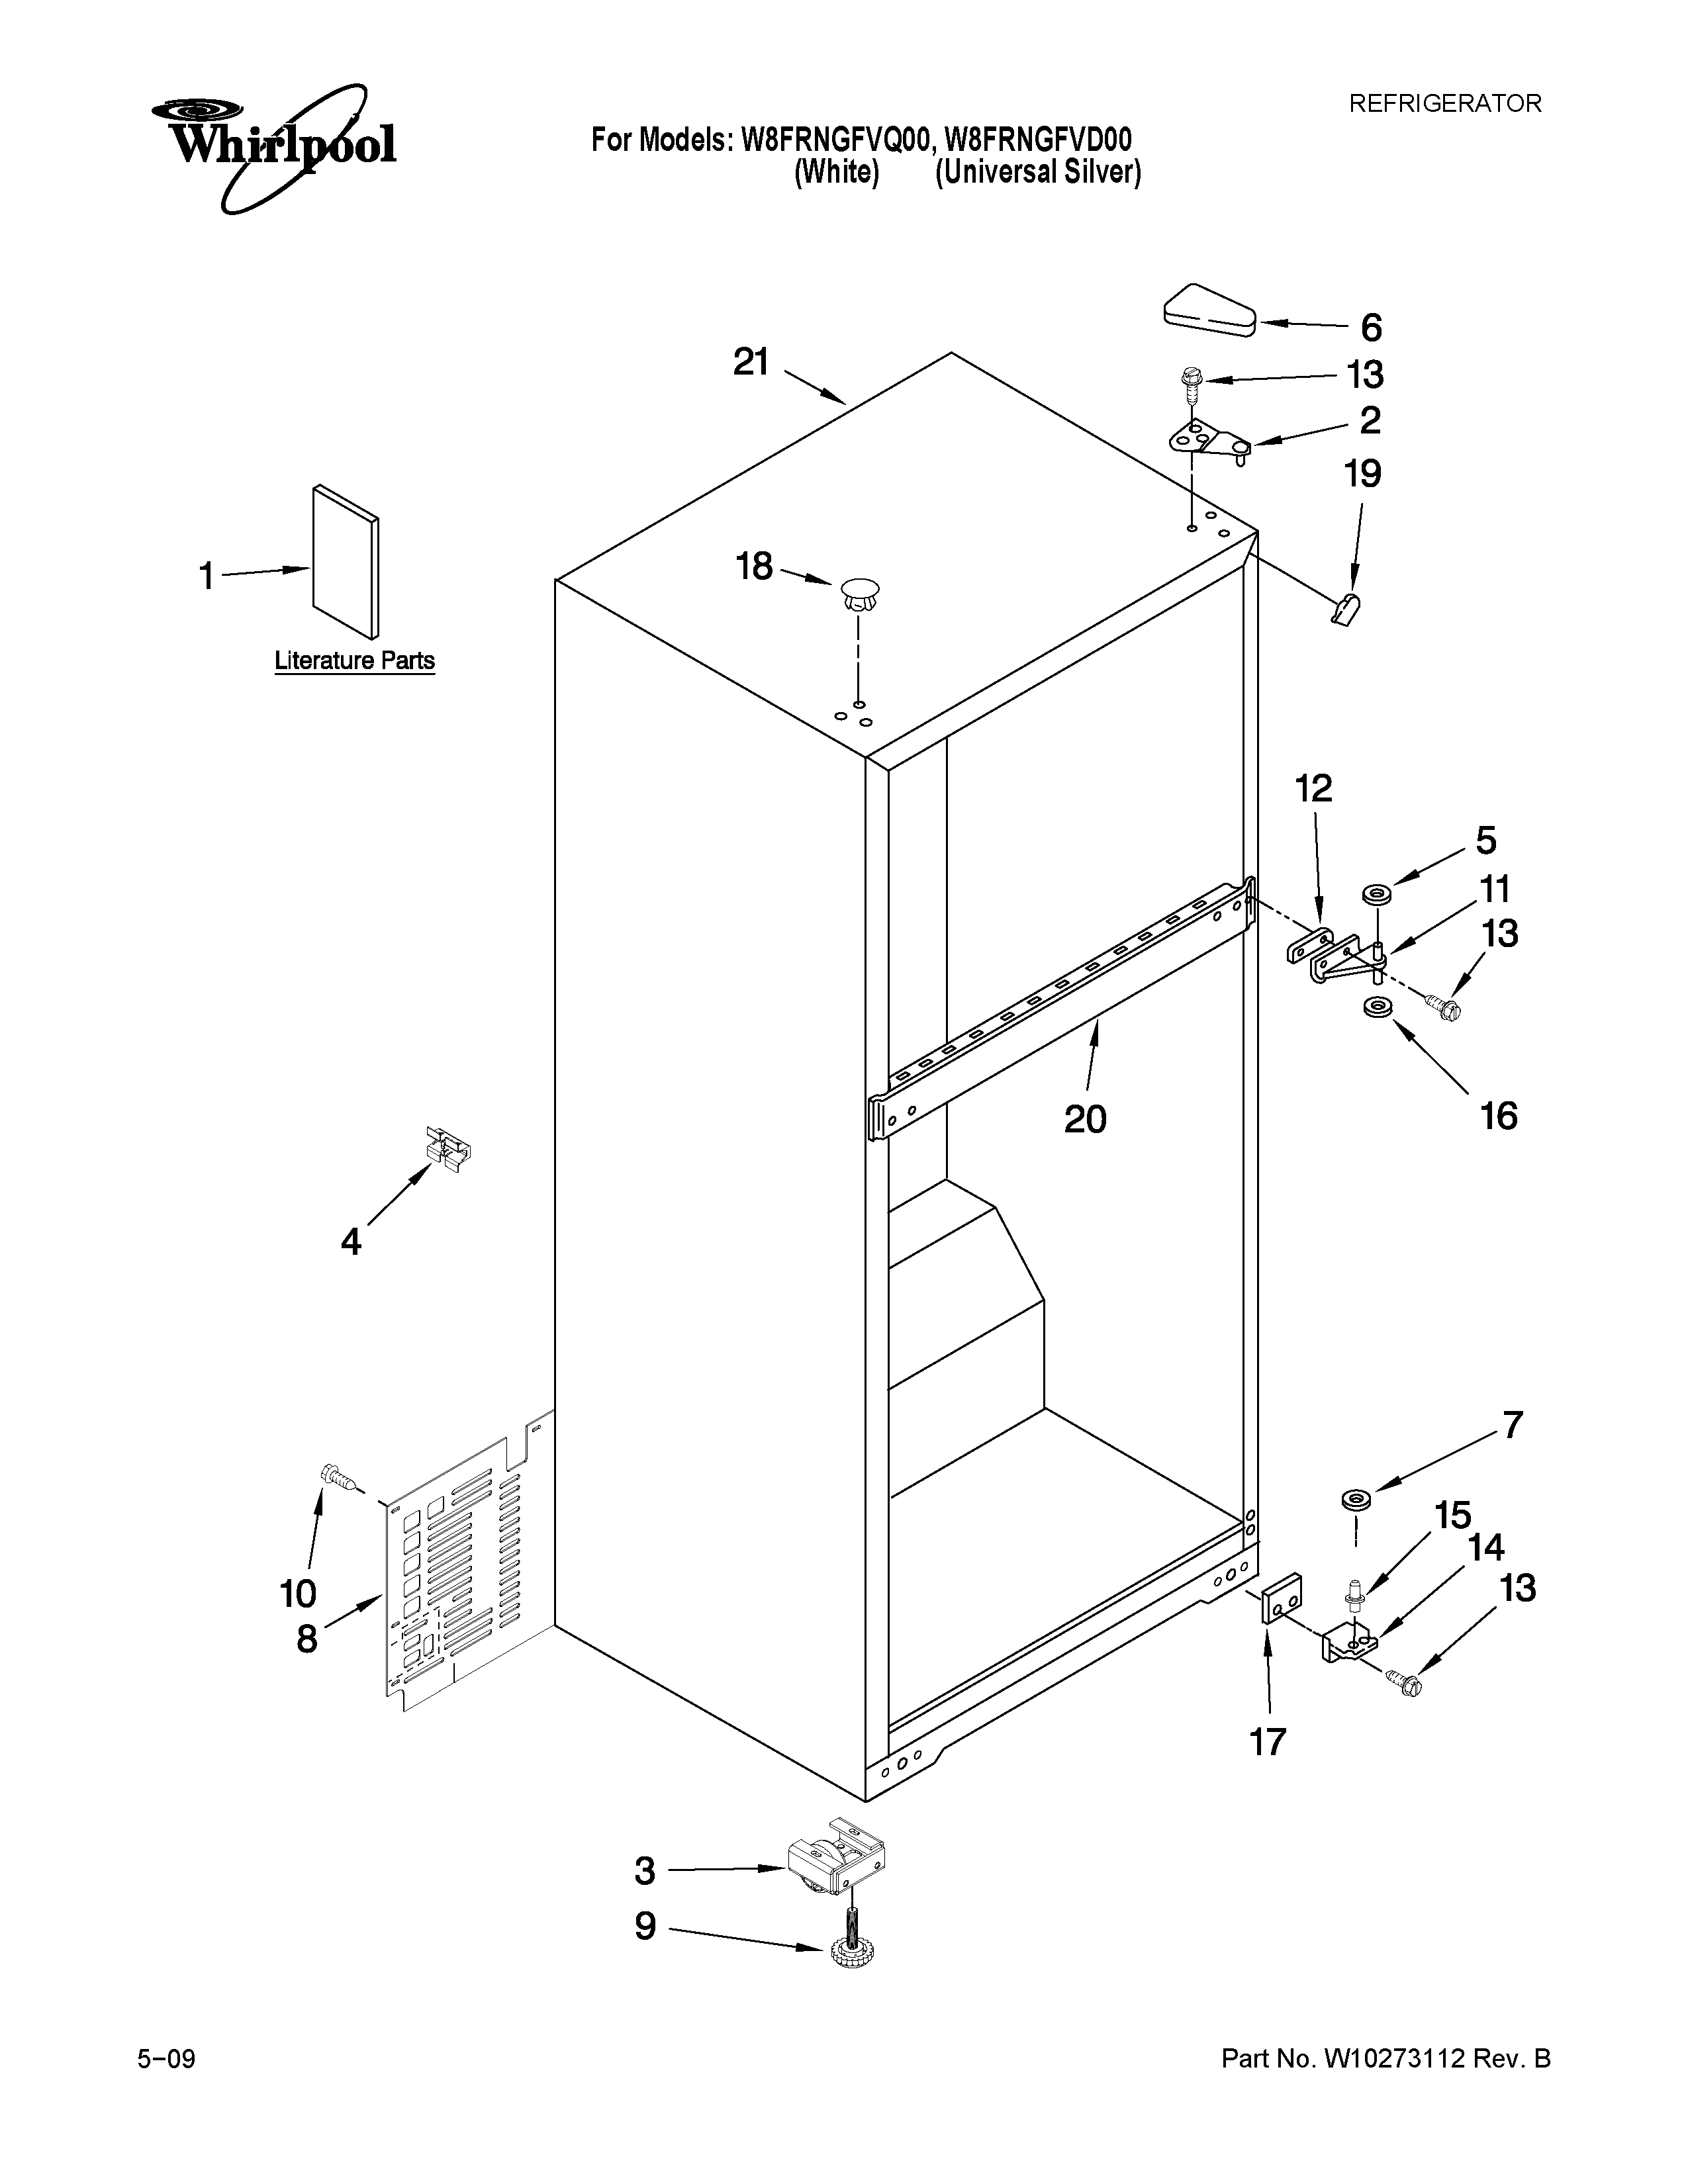 Whirlpool W8FRNGFVD00 cabinet parts diagram